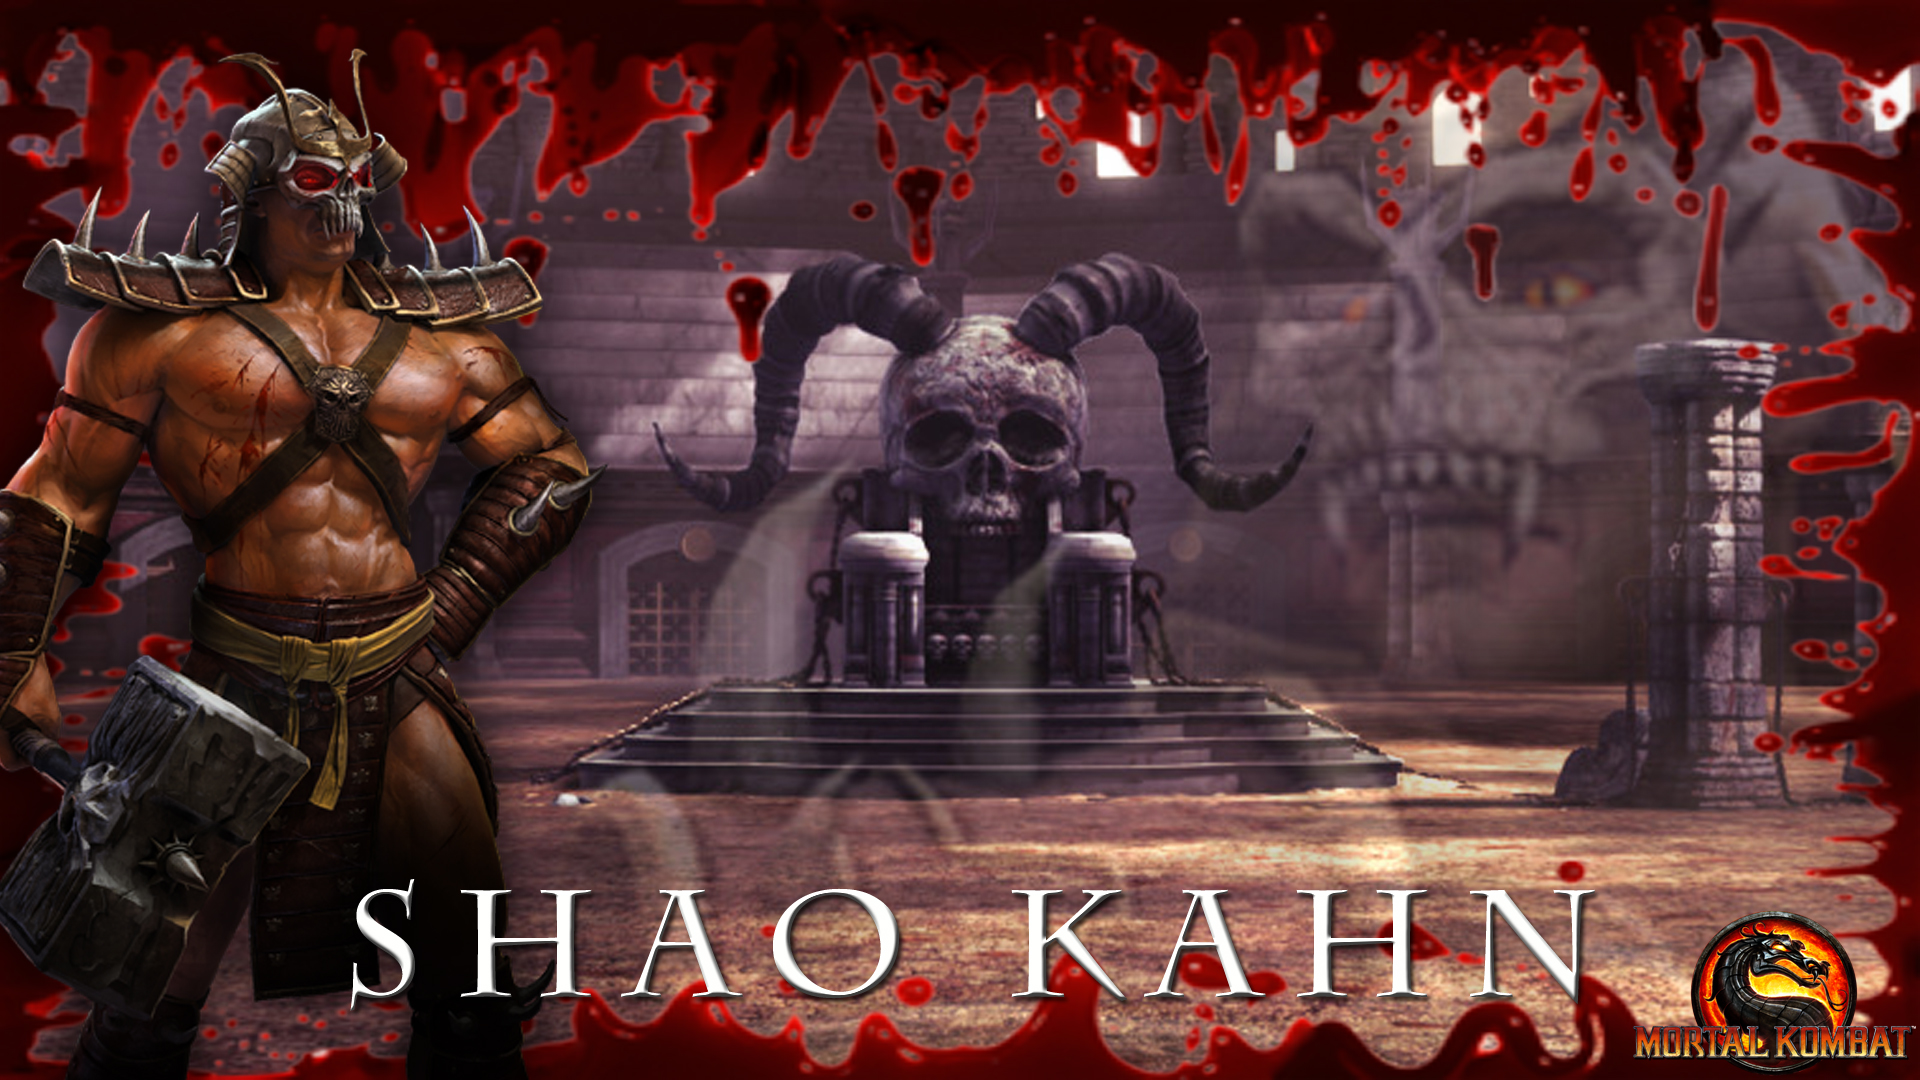 Shao Kahn Wallpaper MK 2011 by DarkGemineye on DeviantArt